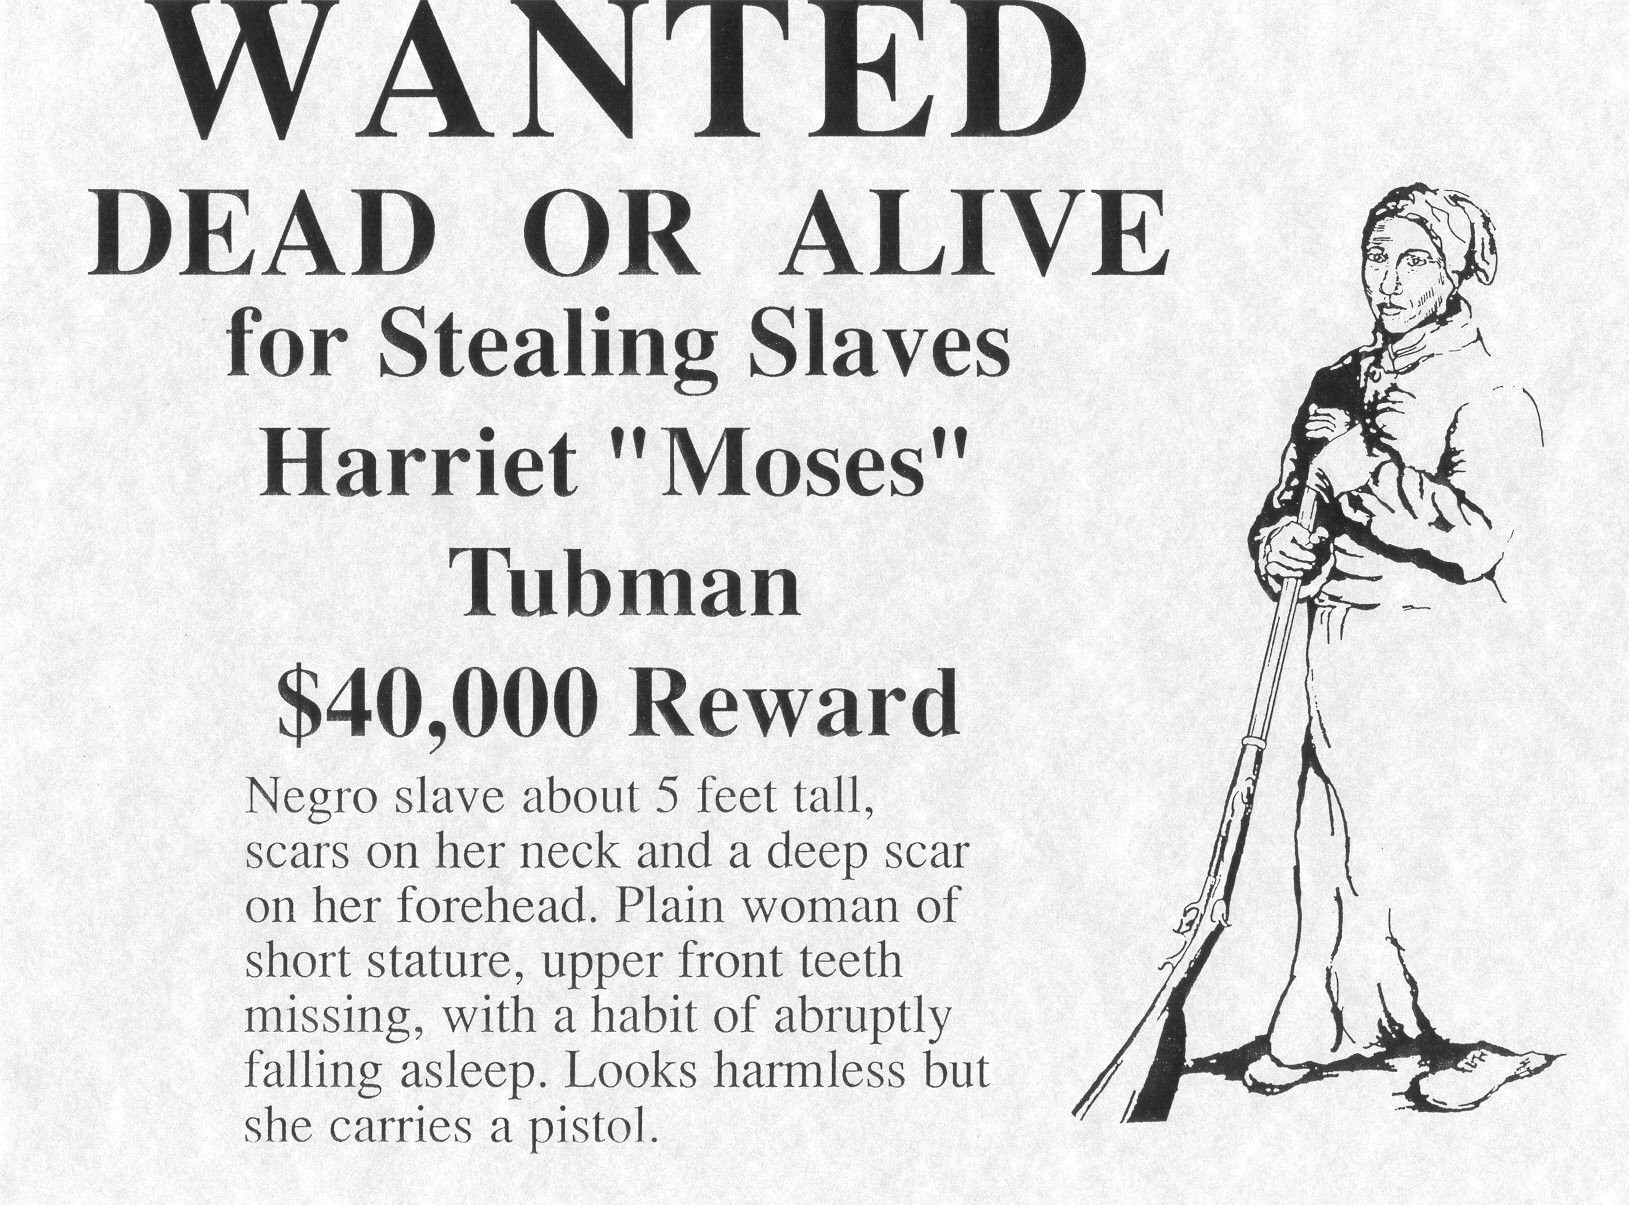 September 17, 1849 Harriet Tubman Attempts to Escape From Slavery ...